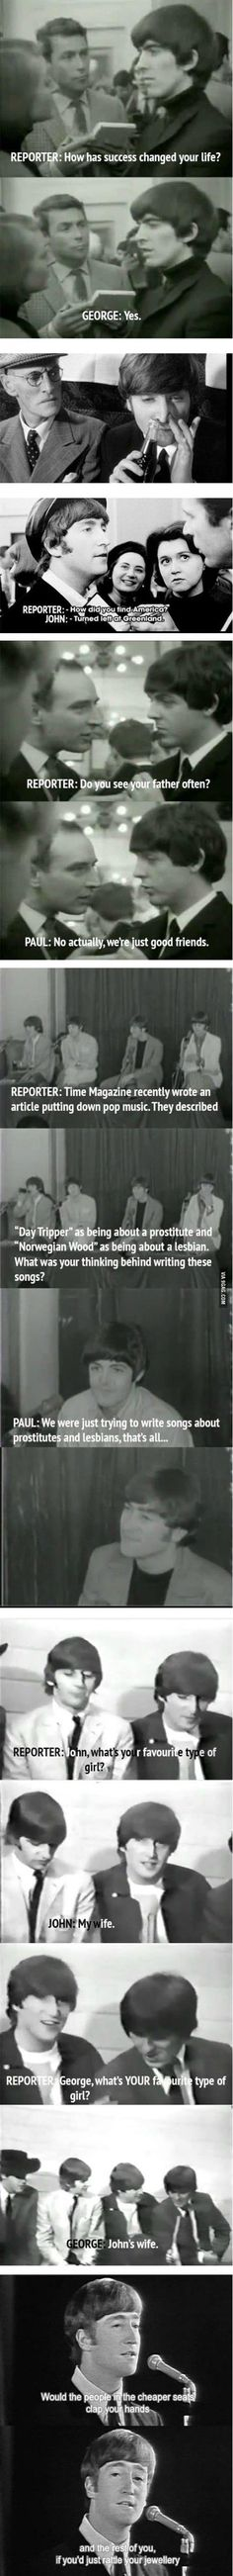 The Clever Beatles - great quotes